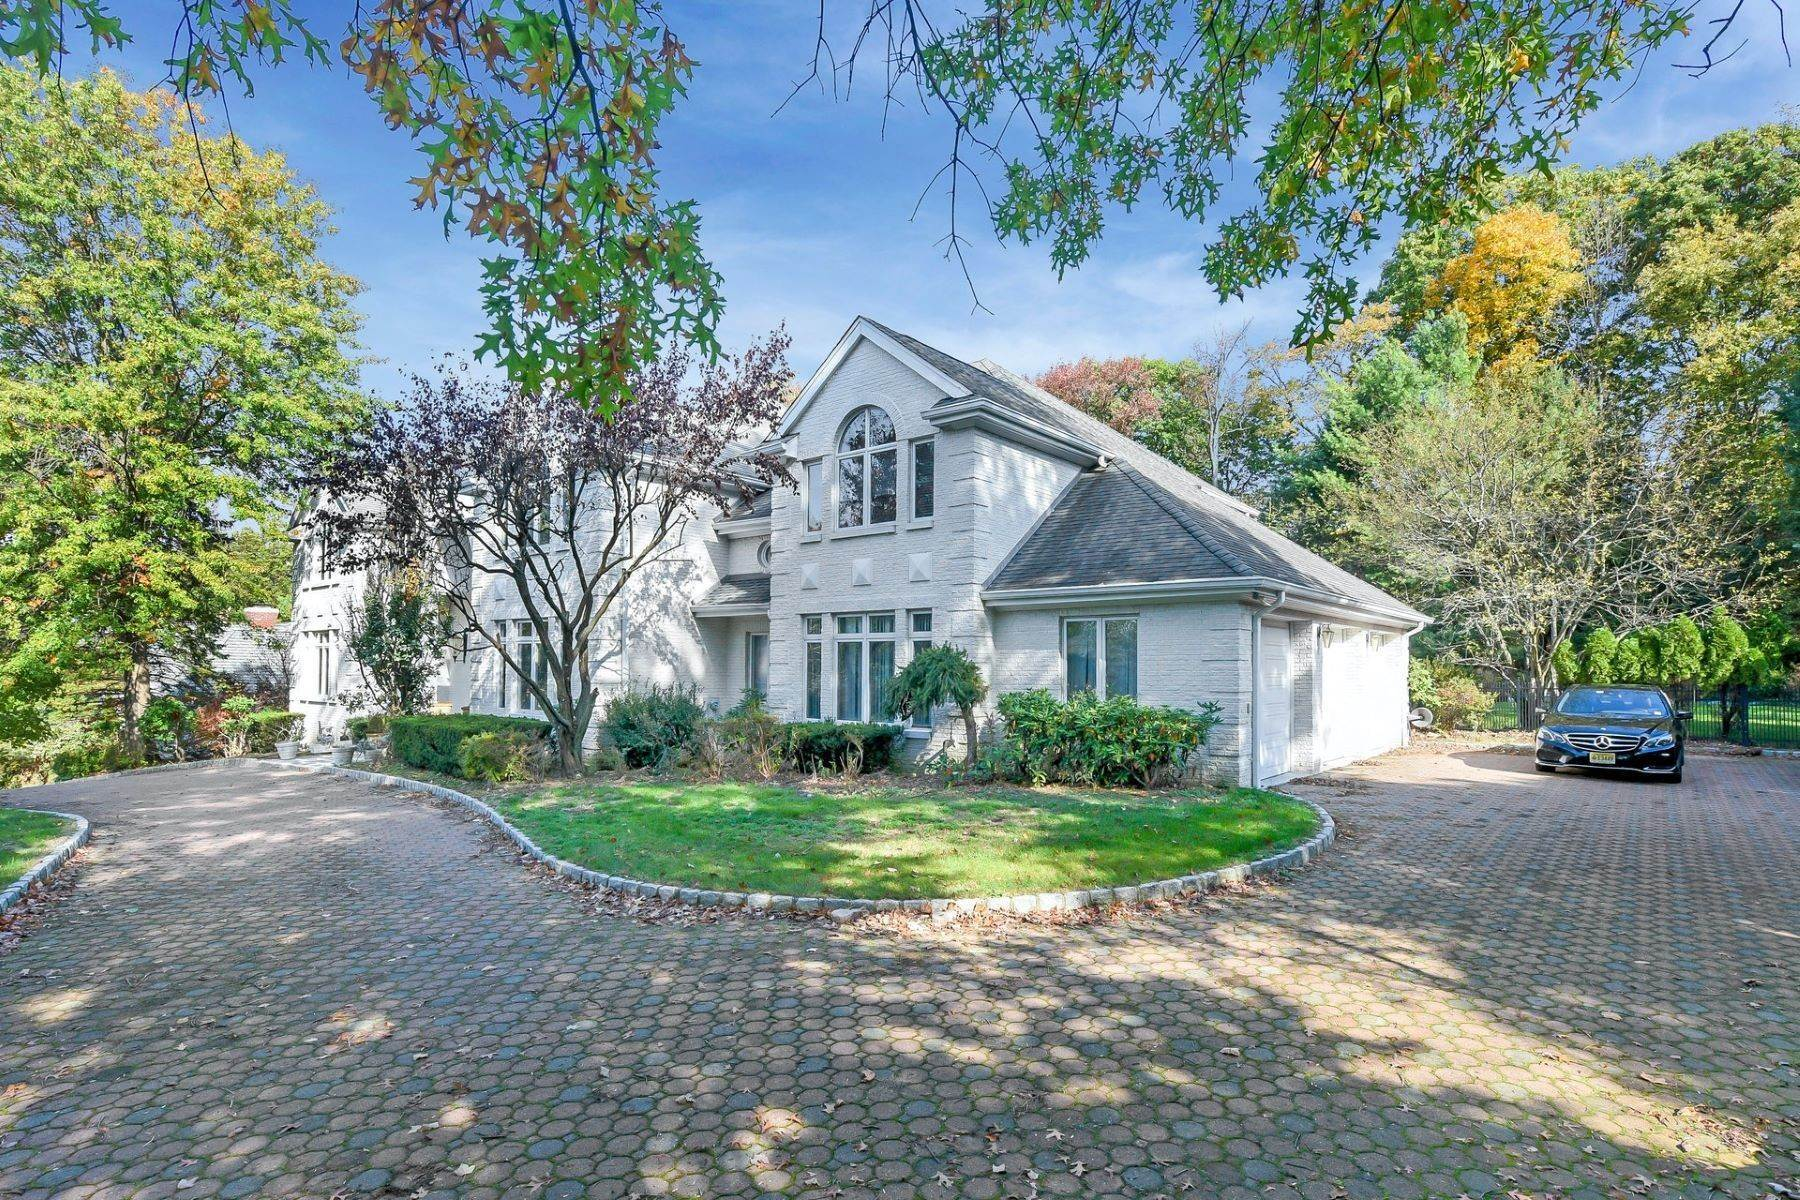 Single Family Homes for Sale at TAMMY BROOK HILLS 47 Huyler Landing Rd, Cresskill, New Jersey 07626 United States